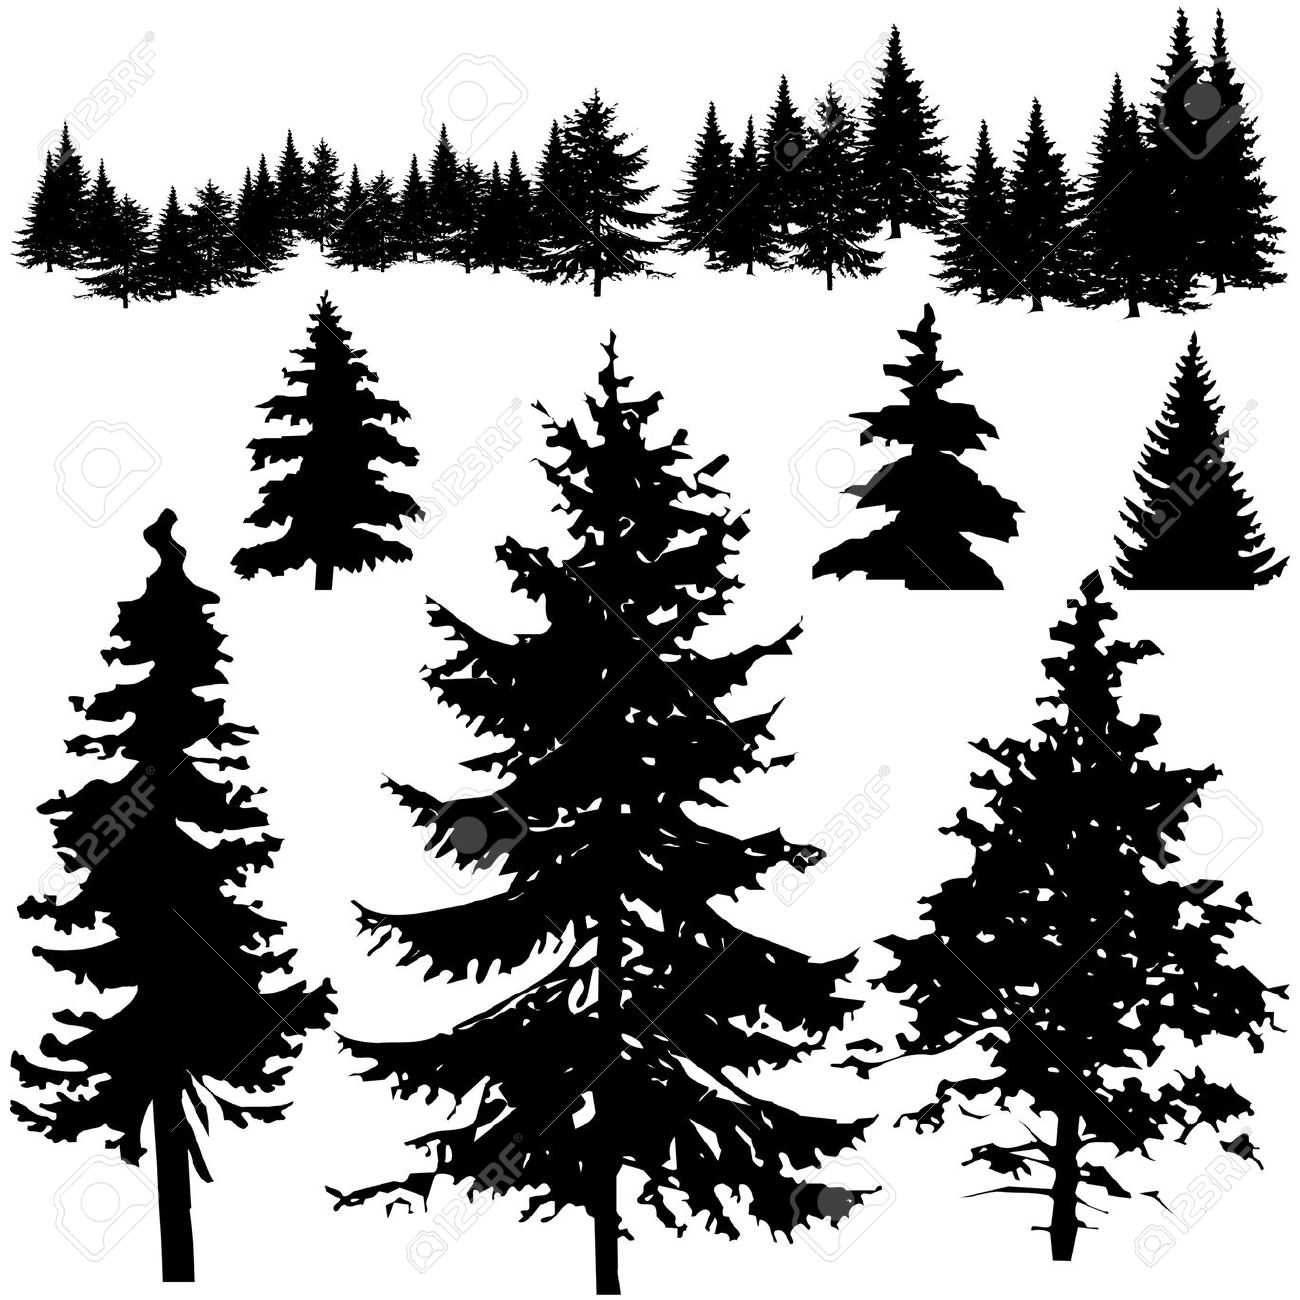 Pine tree silhouette clipart 2.